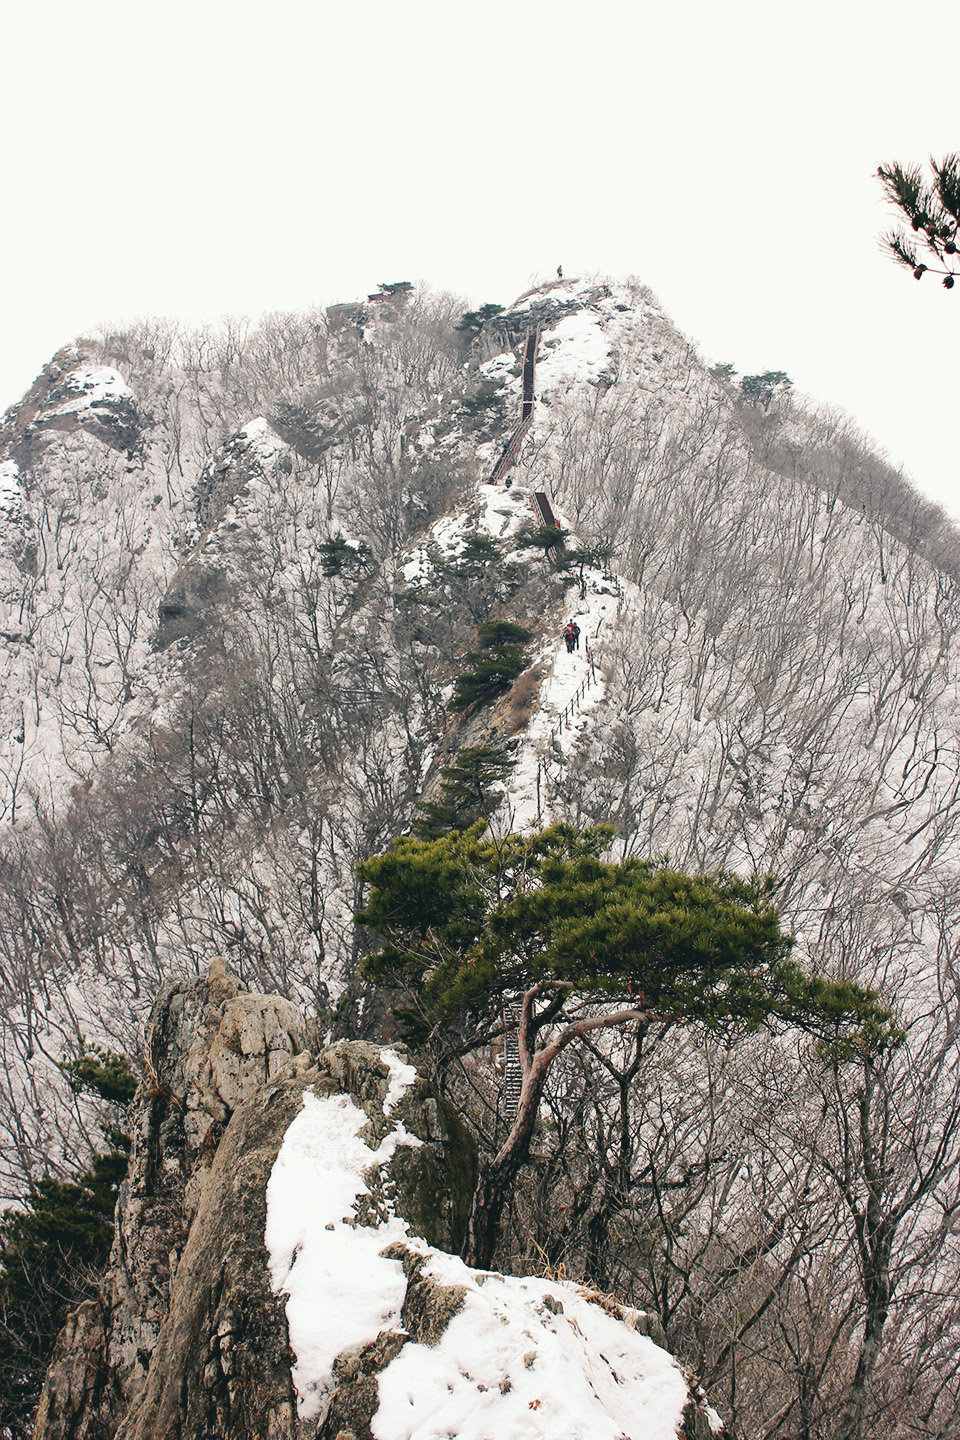 Gyeryongsan National Park